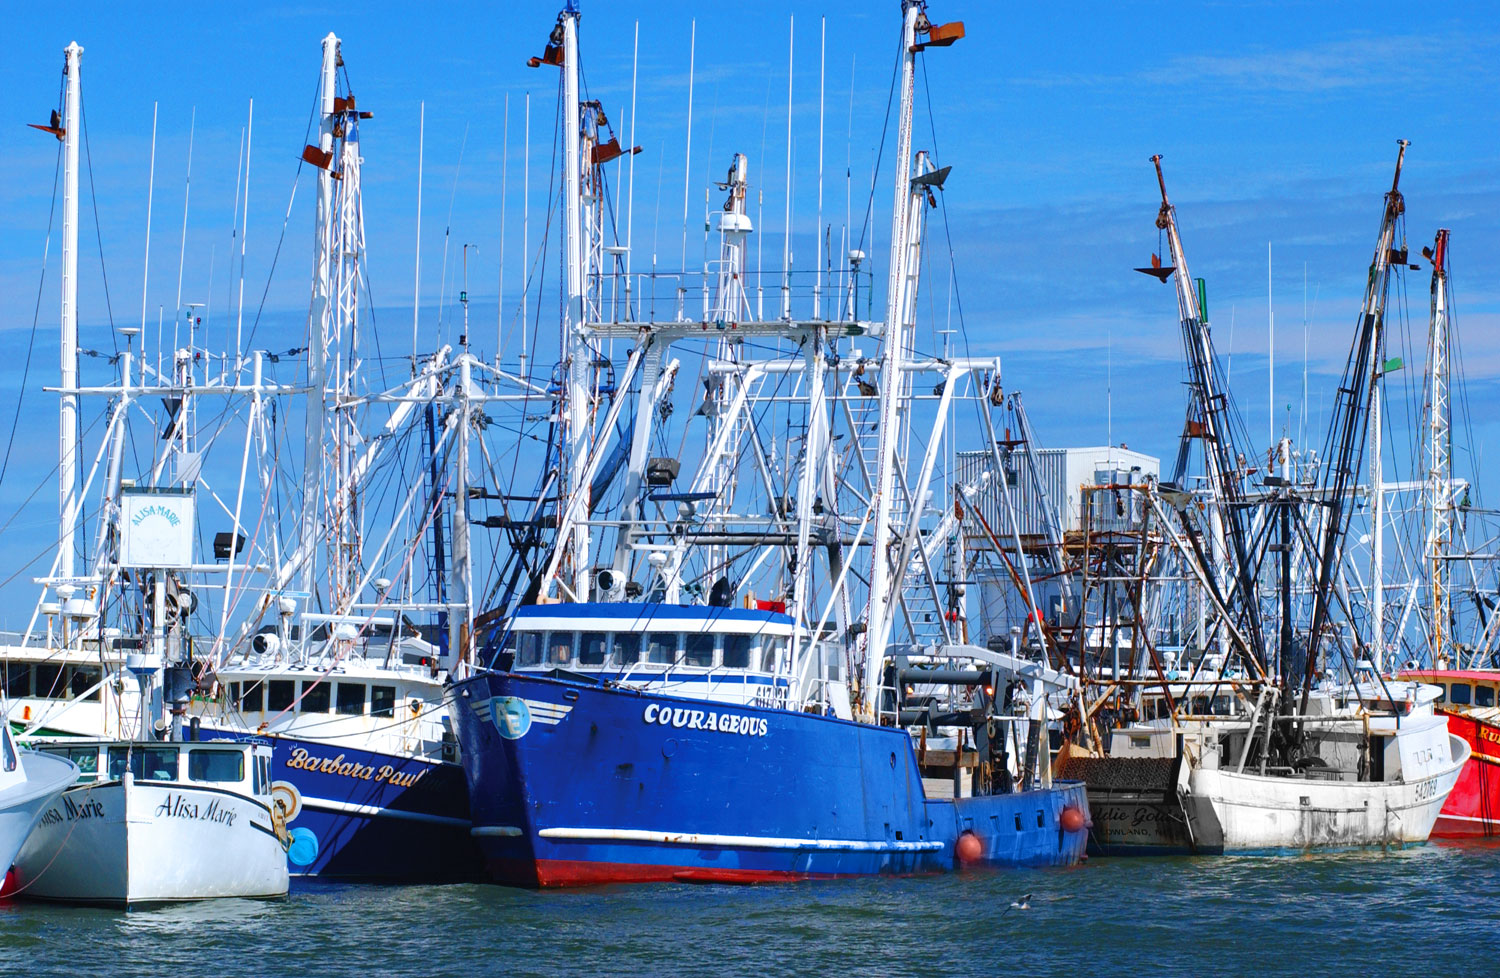 Commercial fishing cape may county nj official website for What is commercial fishing